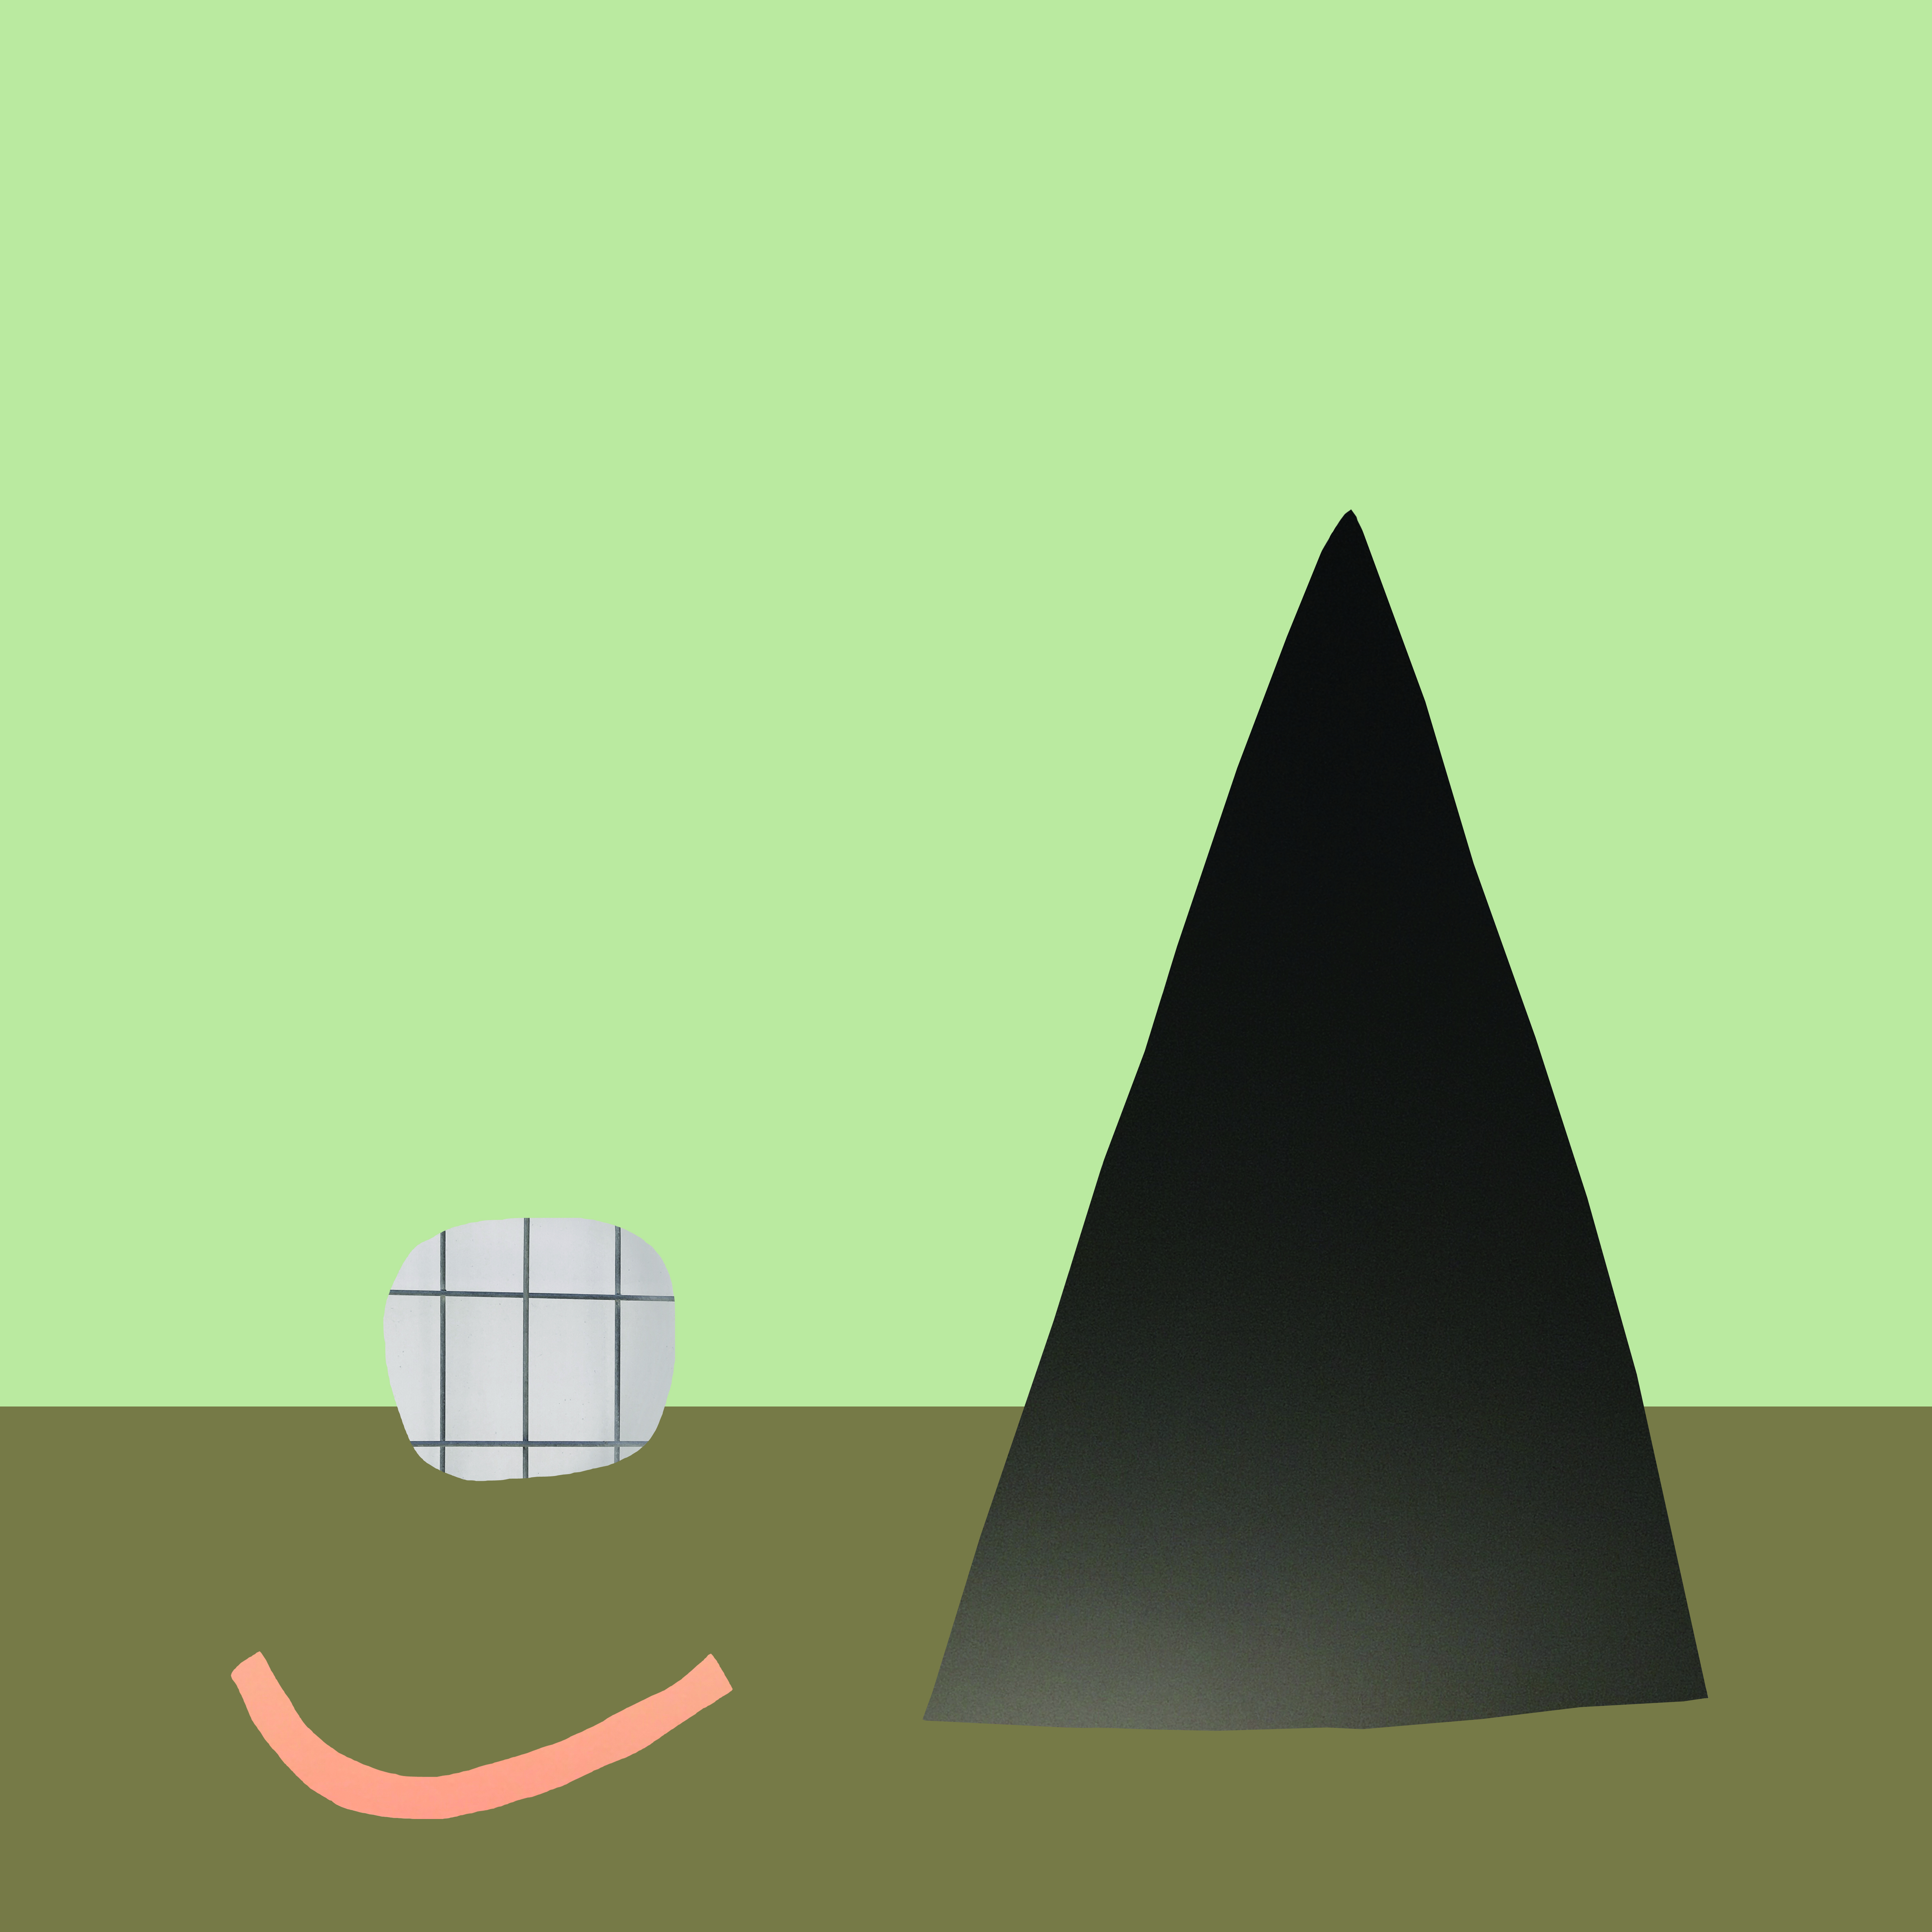 An abstract landscape featuring an inverted triangle, a sphere with a grid pattern and a small, curved pink line against a light green background